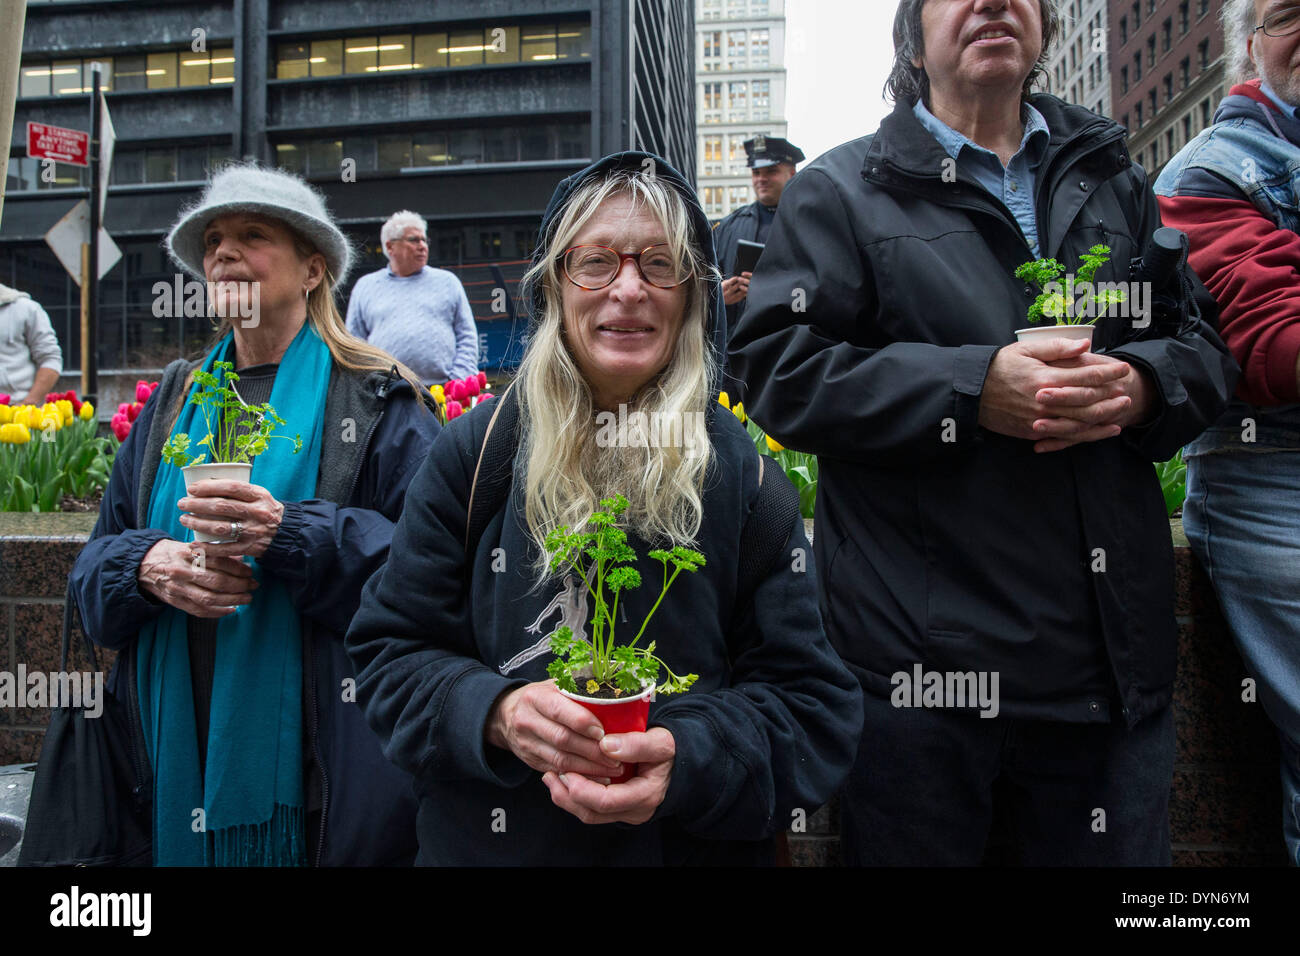 New York, USA. 22nd April 2014. Environmental activists attend a protest in Zuccotti Park on Earth Day. Protesters - Stock Image